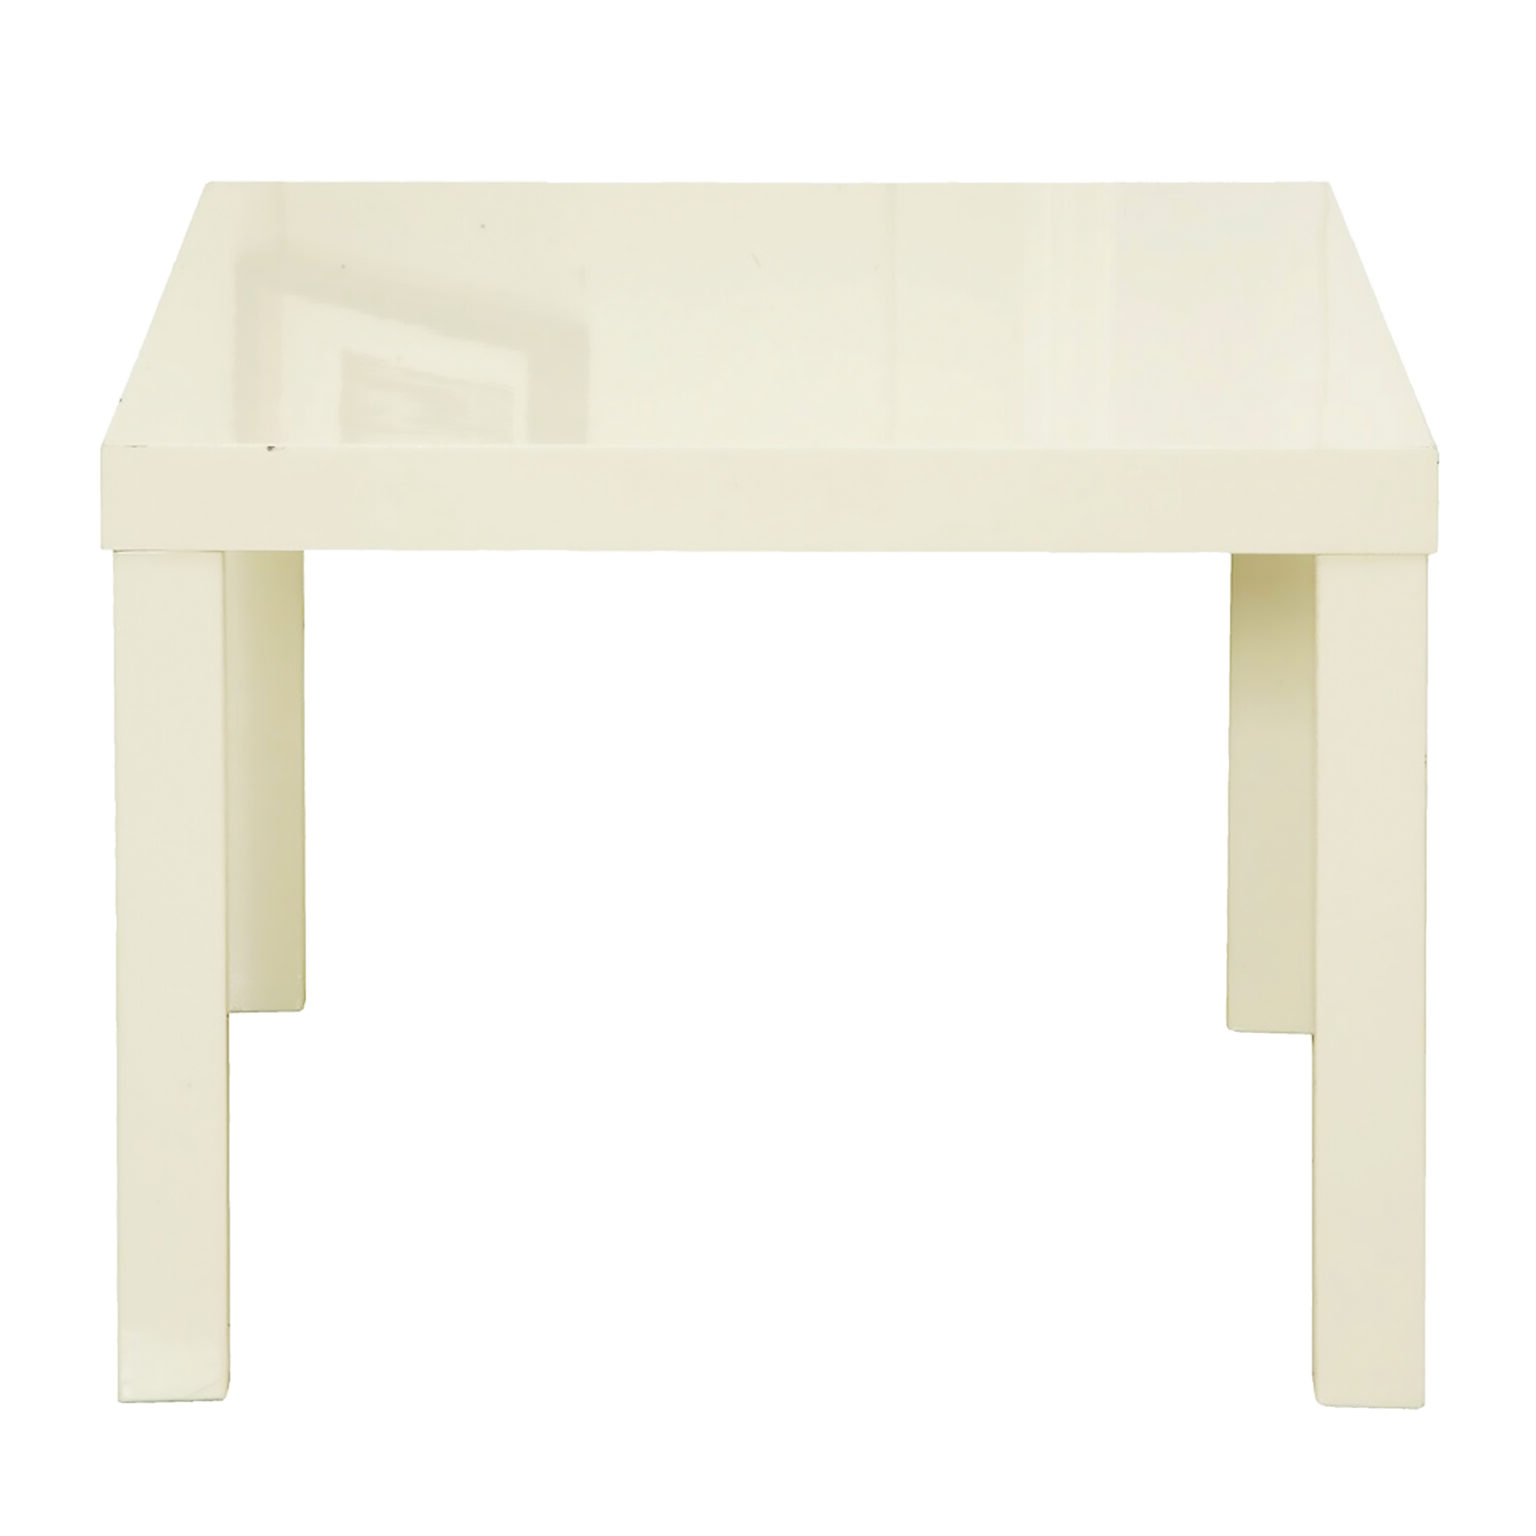 Lpd Puro Console Table White | Modern Furniture Shop In Puro White Tv Stands (View 3 of 20)